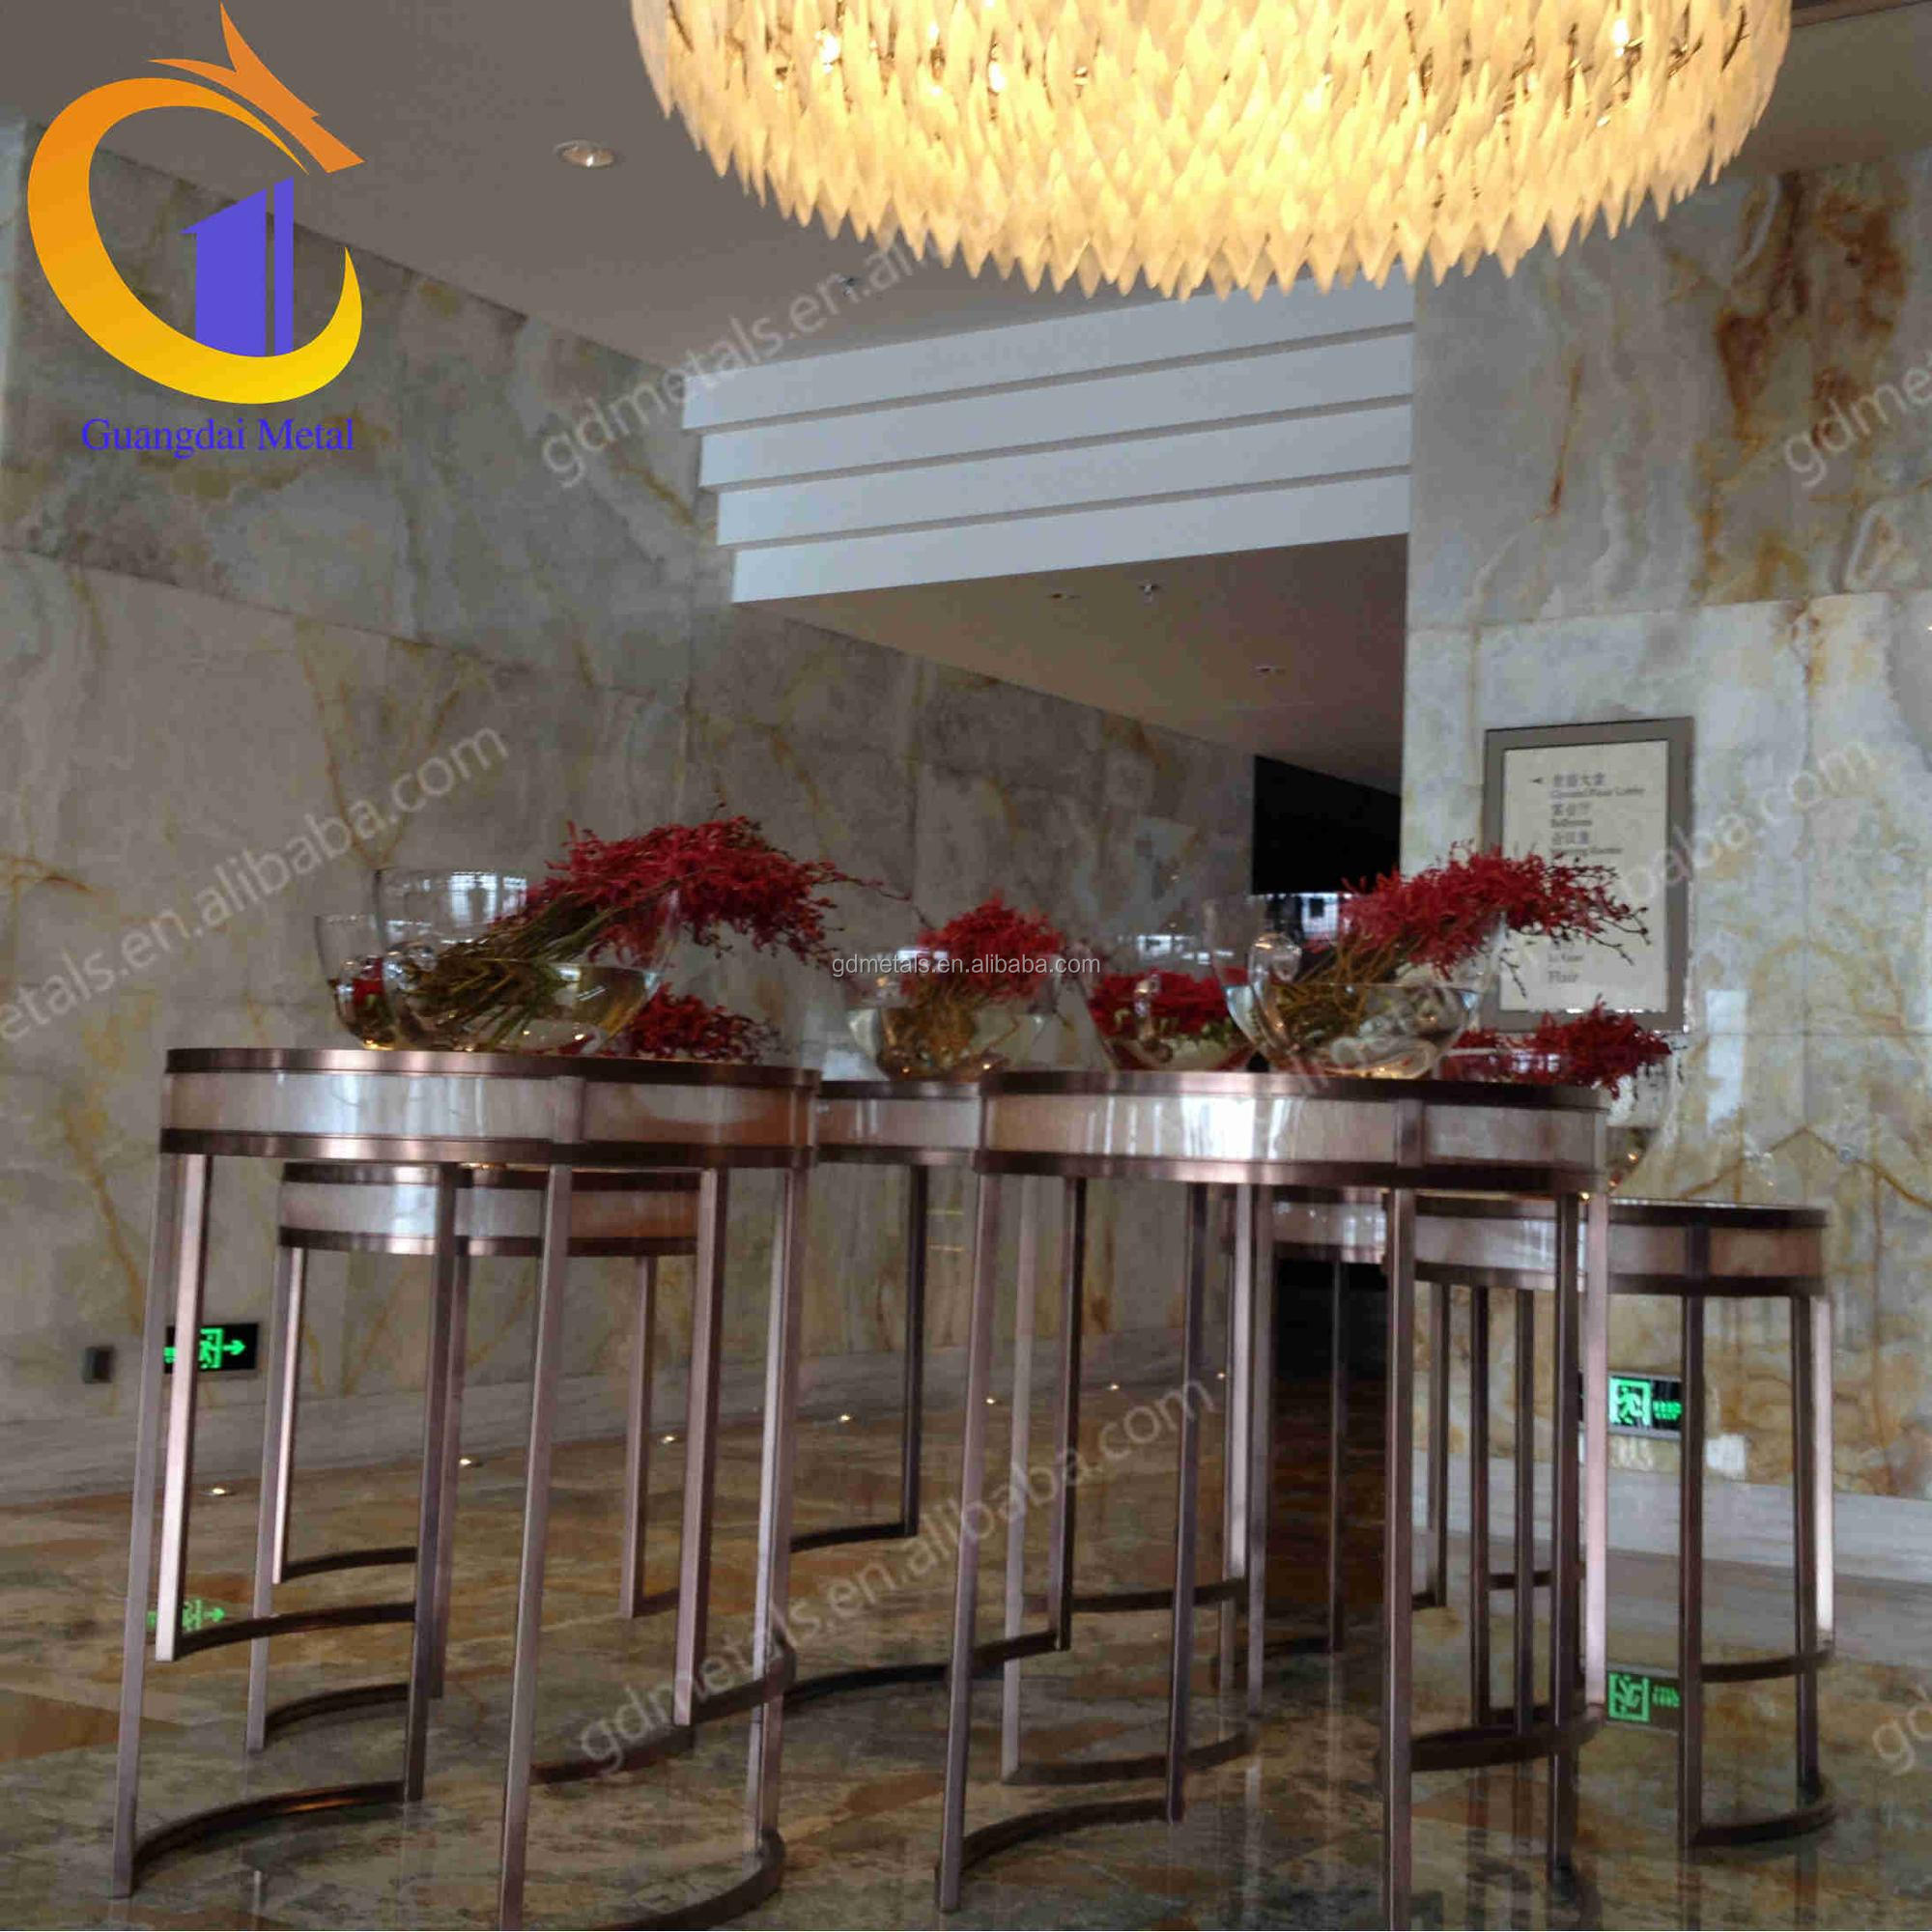 Elegant design one-stop custom OEM production contracting projectstainless steel metal furniture table leg.